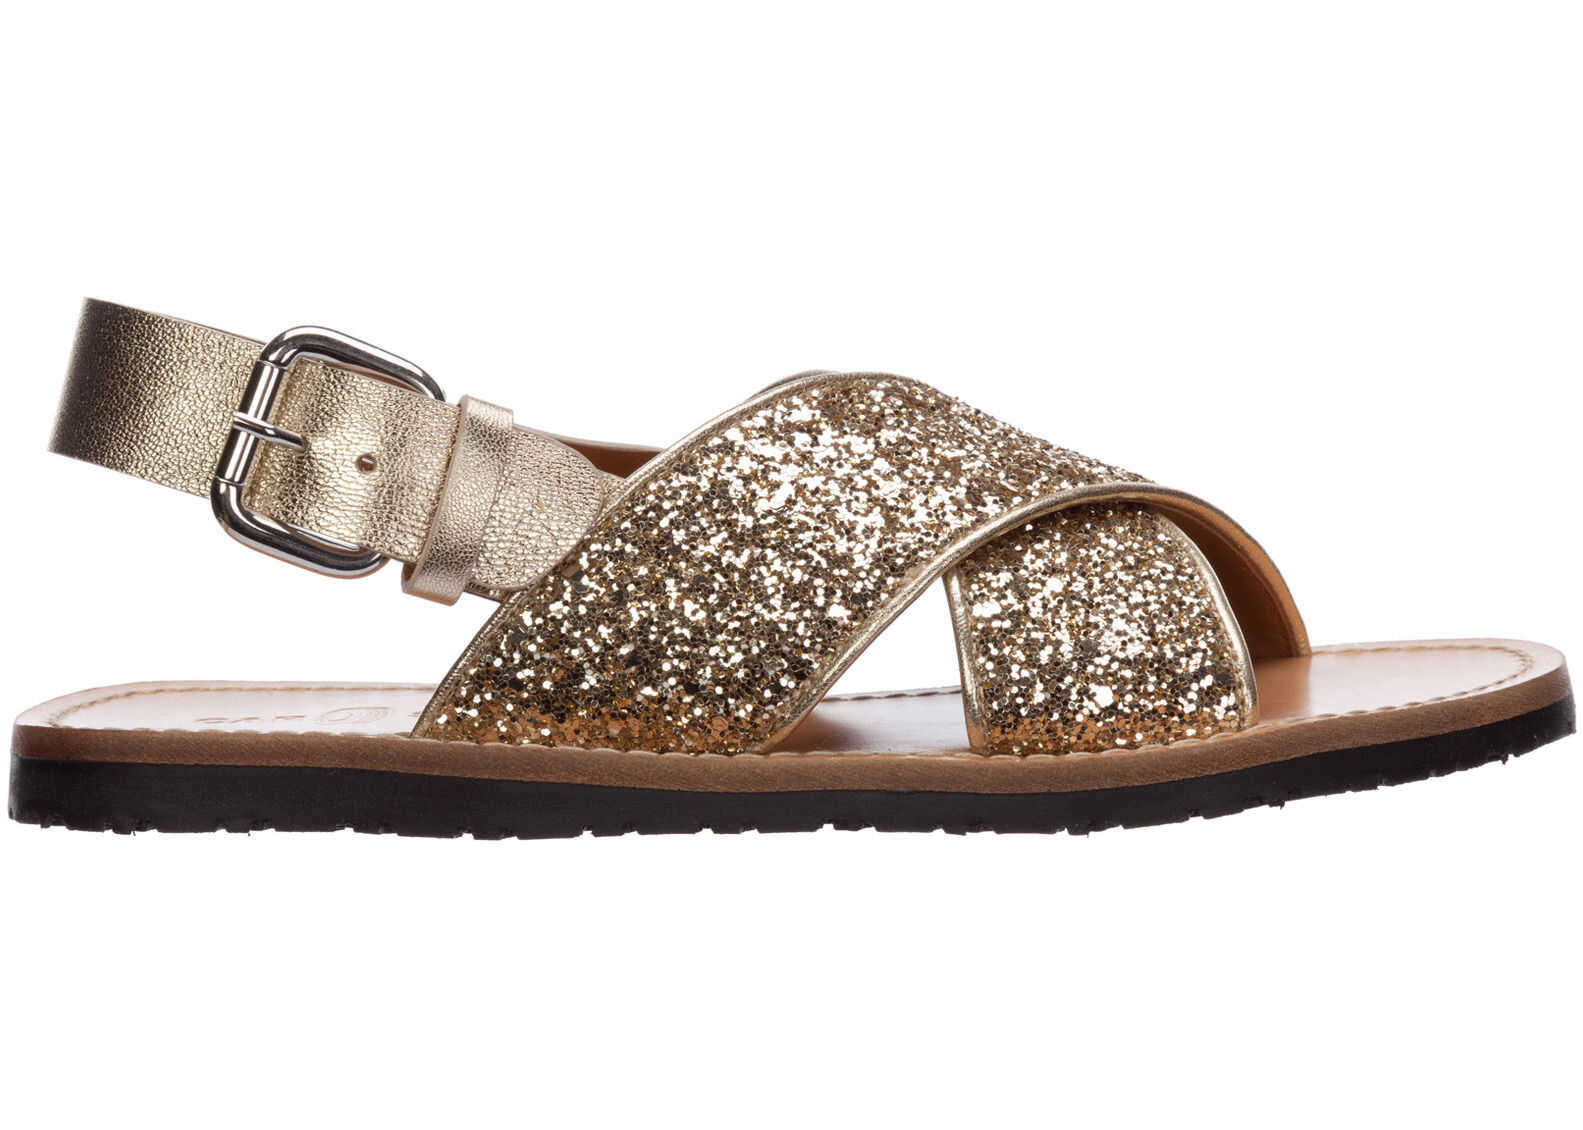 Car Shoe Leather Sandals Gold